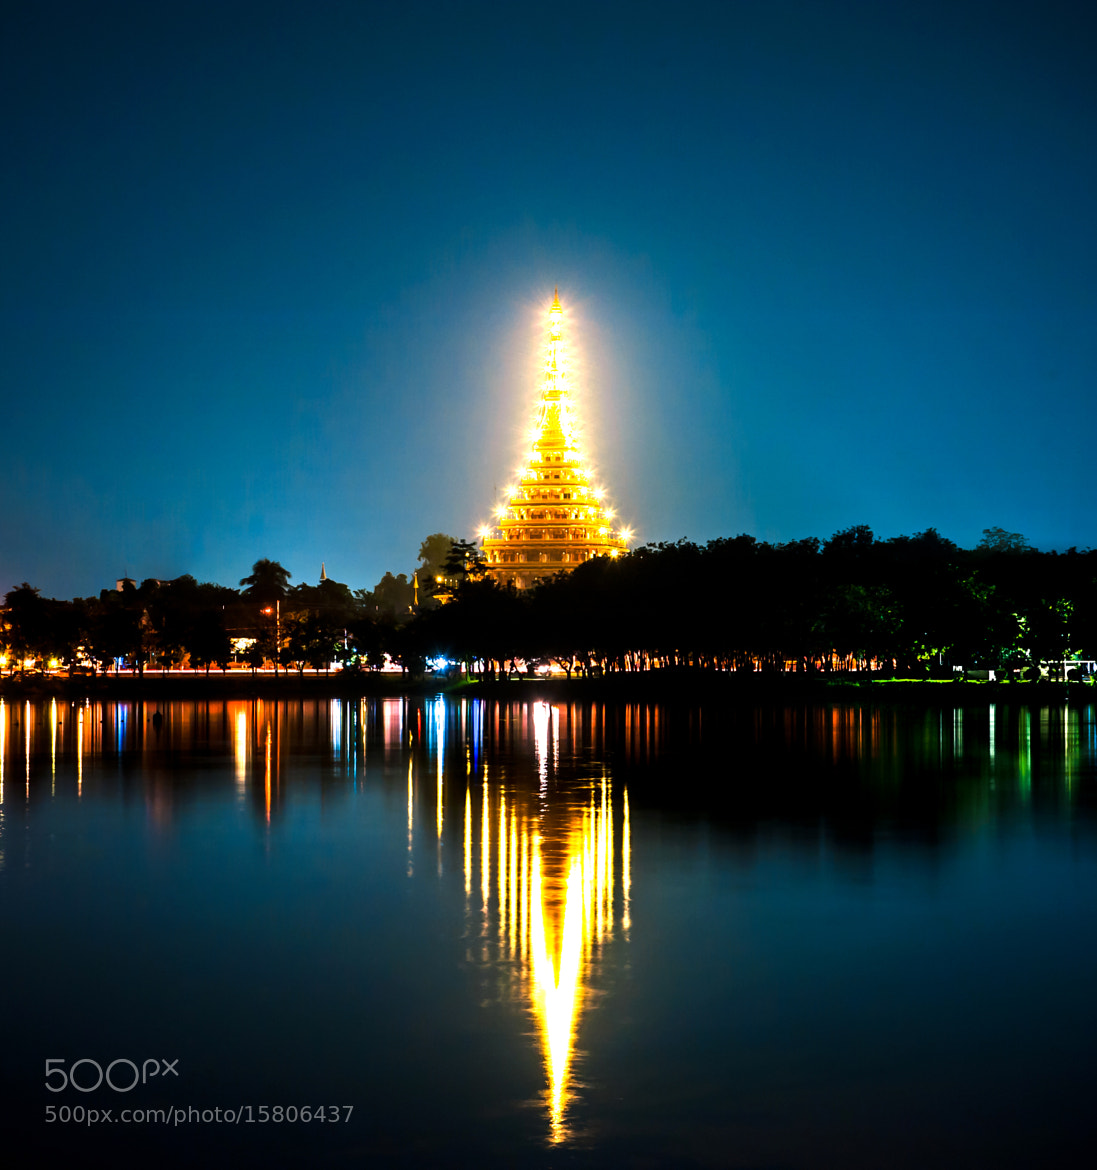 Photograph Phra Mahathat Kaen Nakhon by Kritsana Pinaphang on 500px